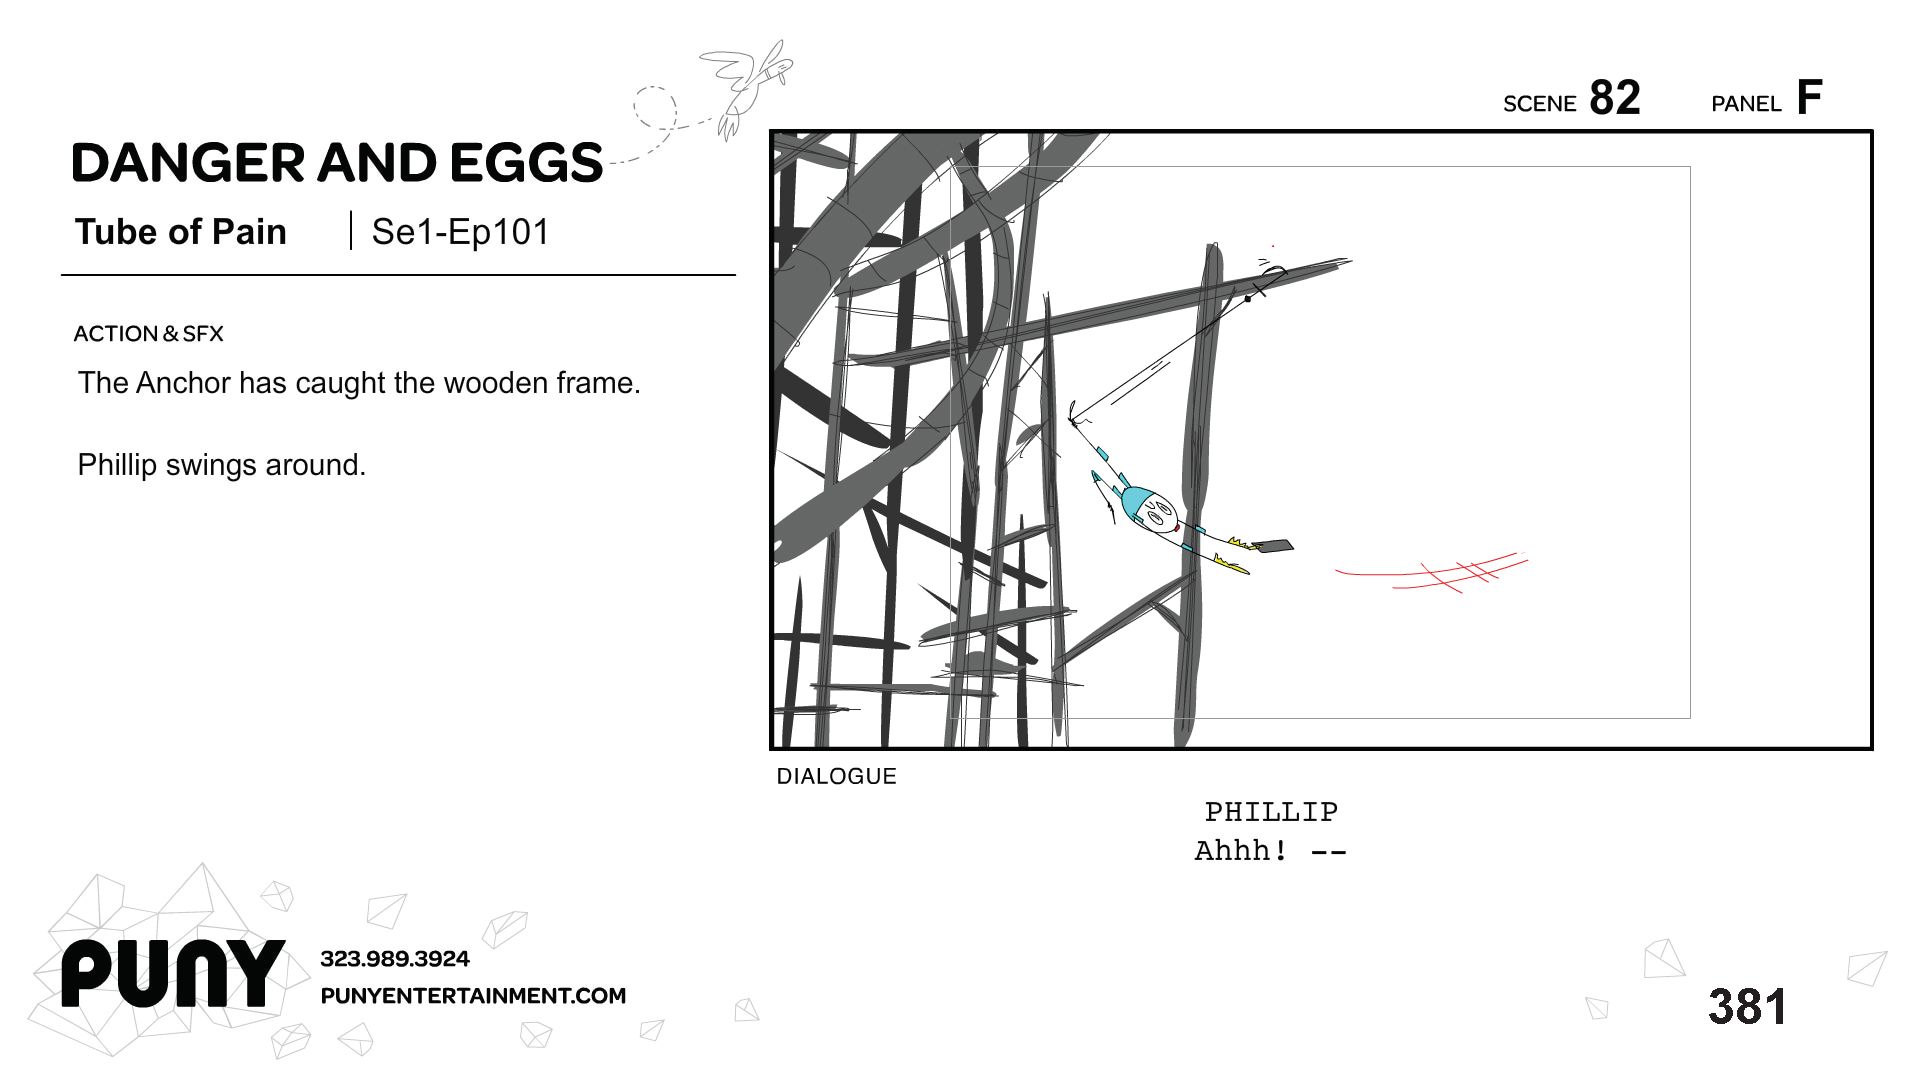 MikeOwens_STORYBOARDS_DangerAndEggs_Page_276.png